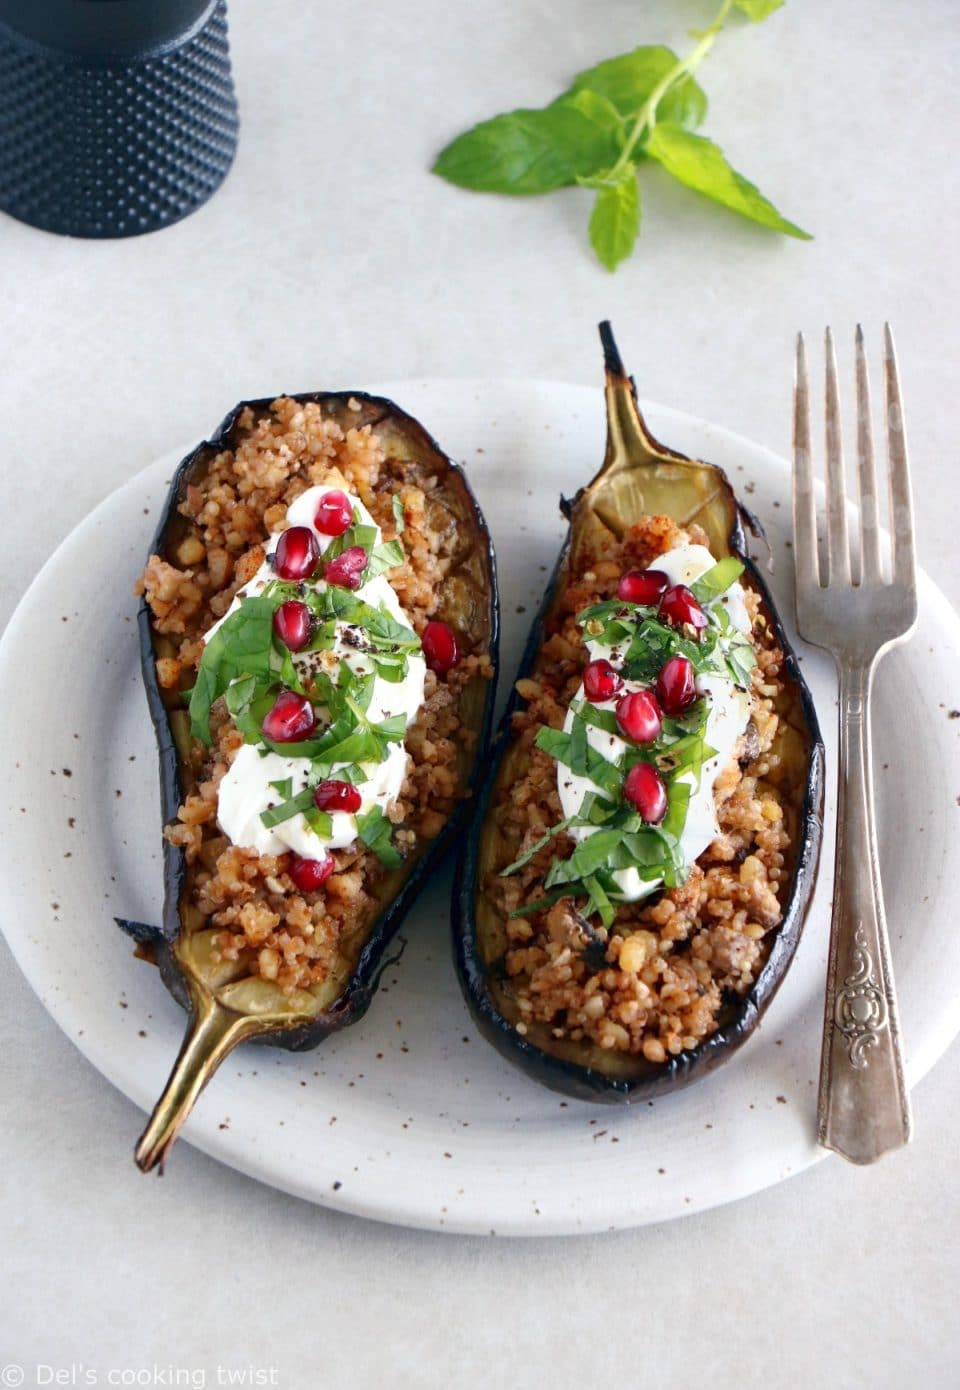 Stuffed eggplant with yogurt and quinoa